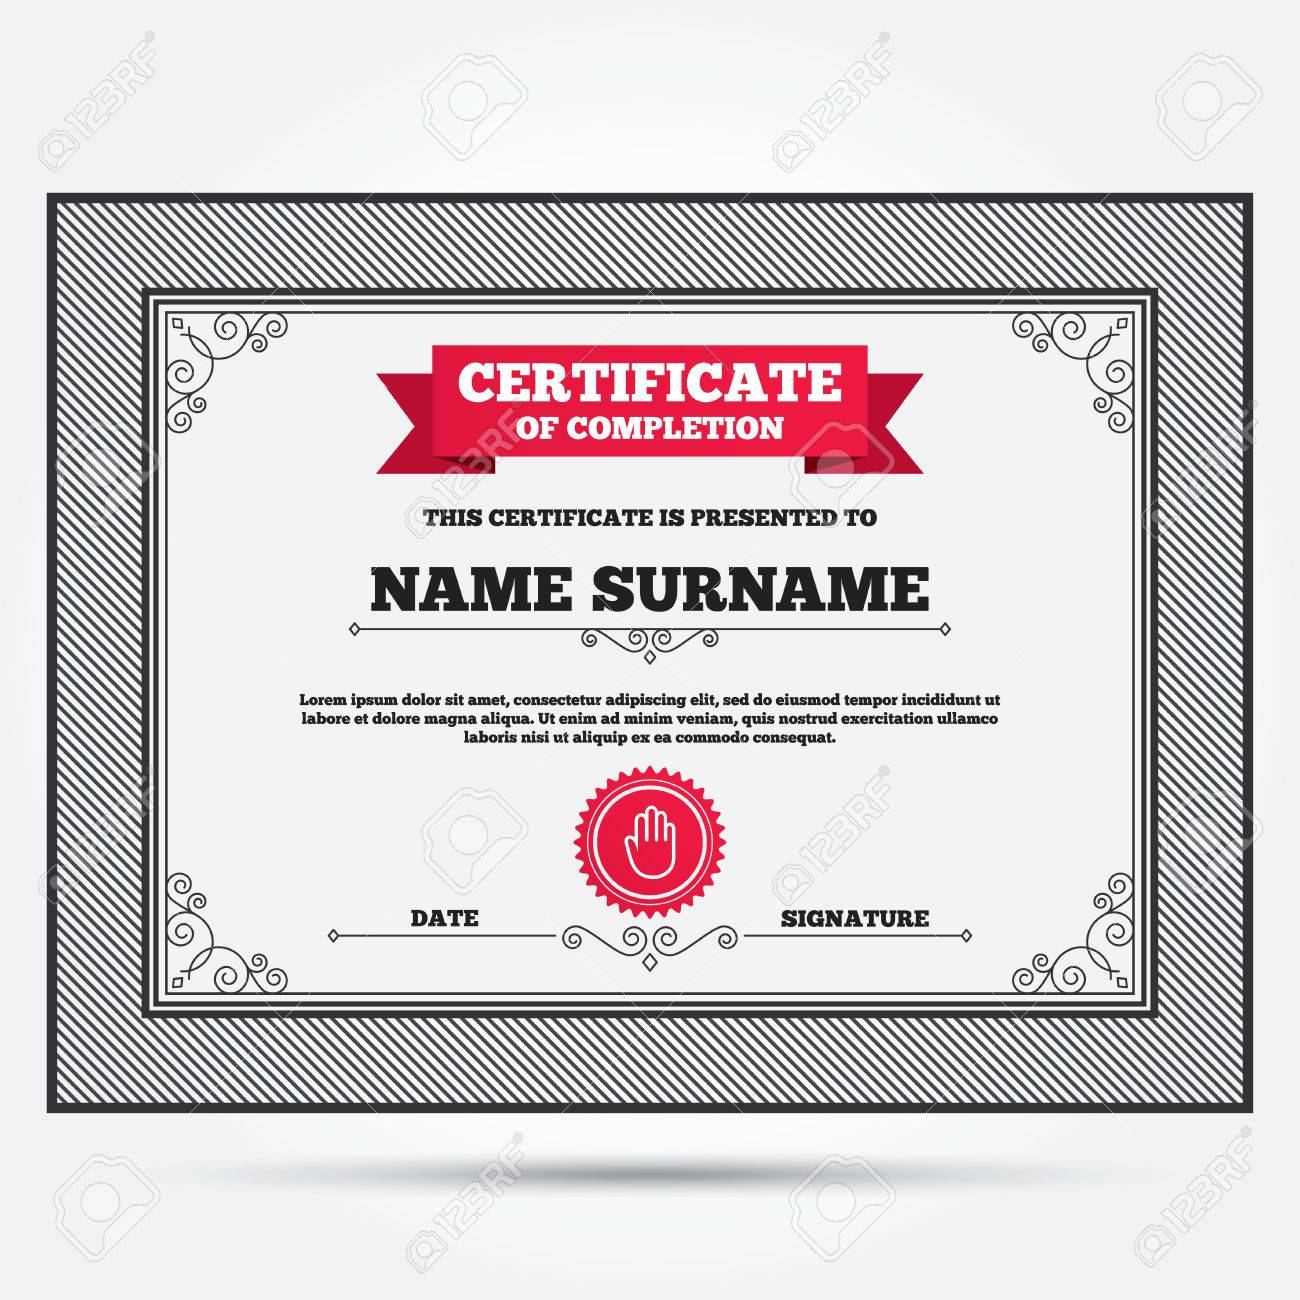 100 certificate of origin uk template eur lex 02010r0206 certificate of origin uk template 100 sop templates 9 job application template free ledger paper yadclub Image collections